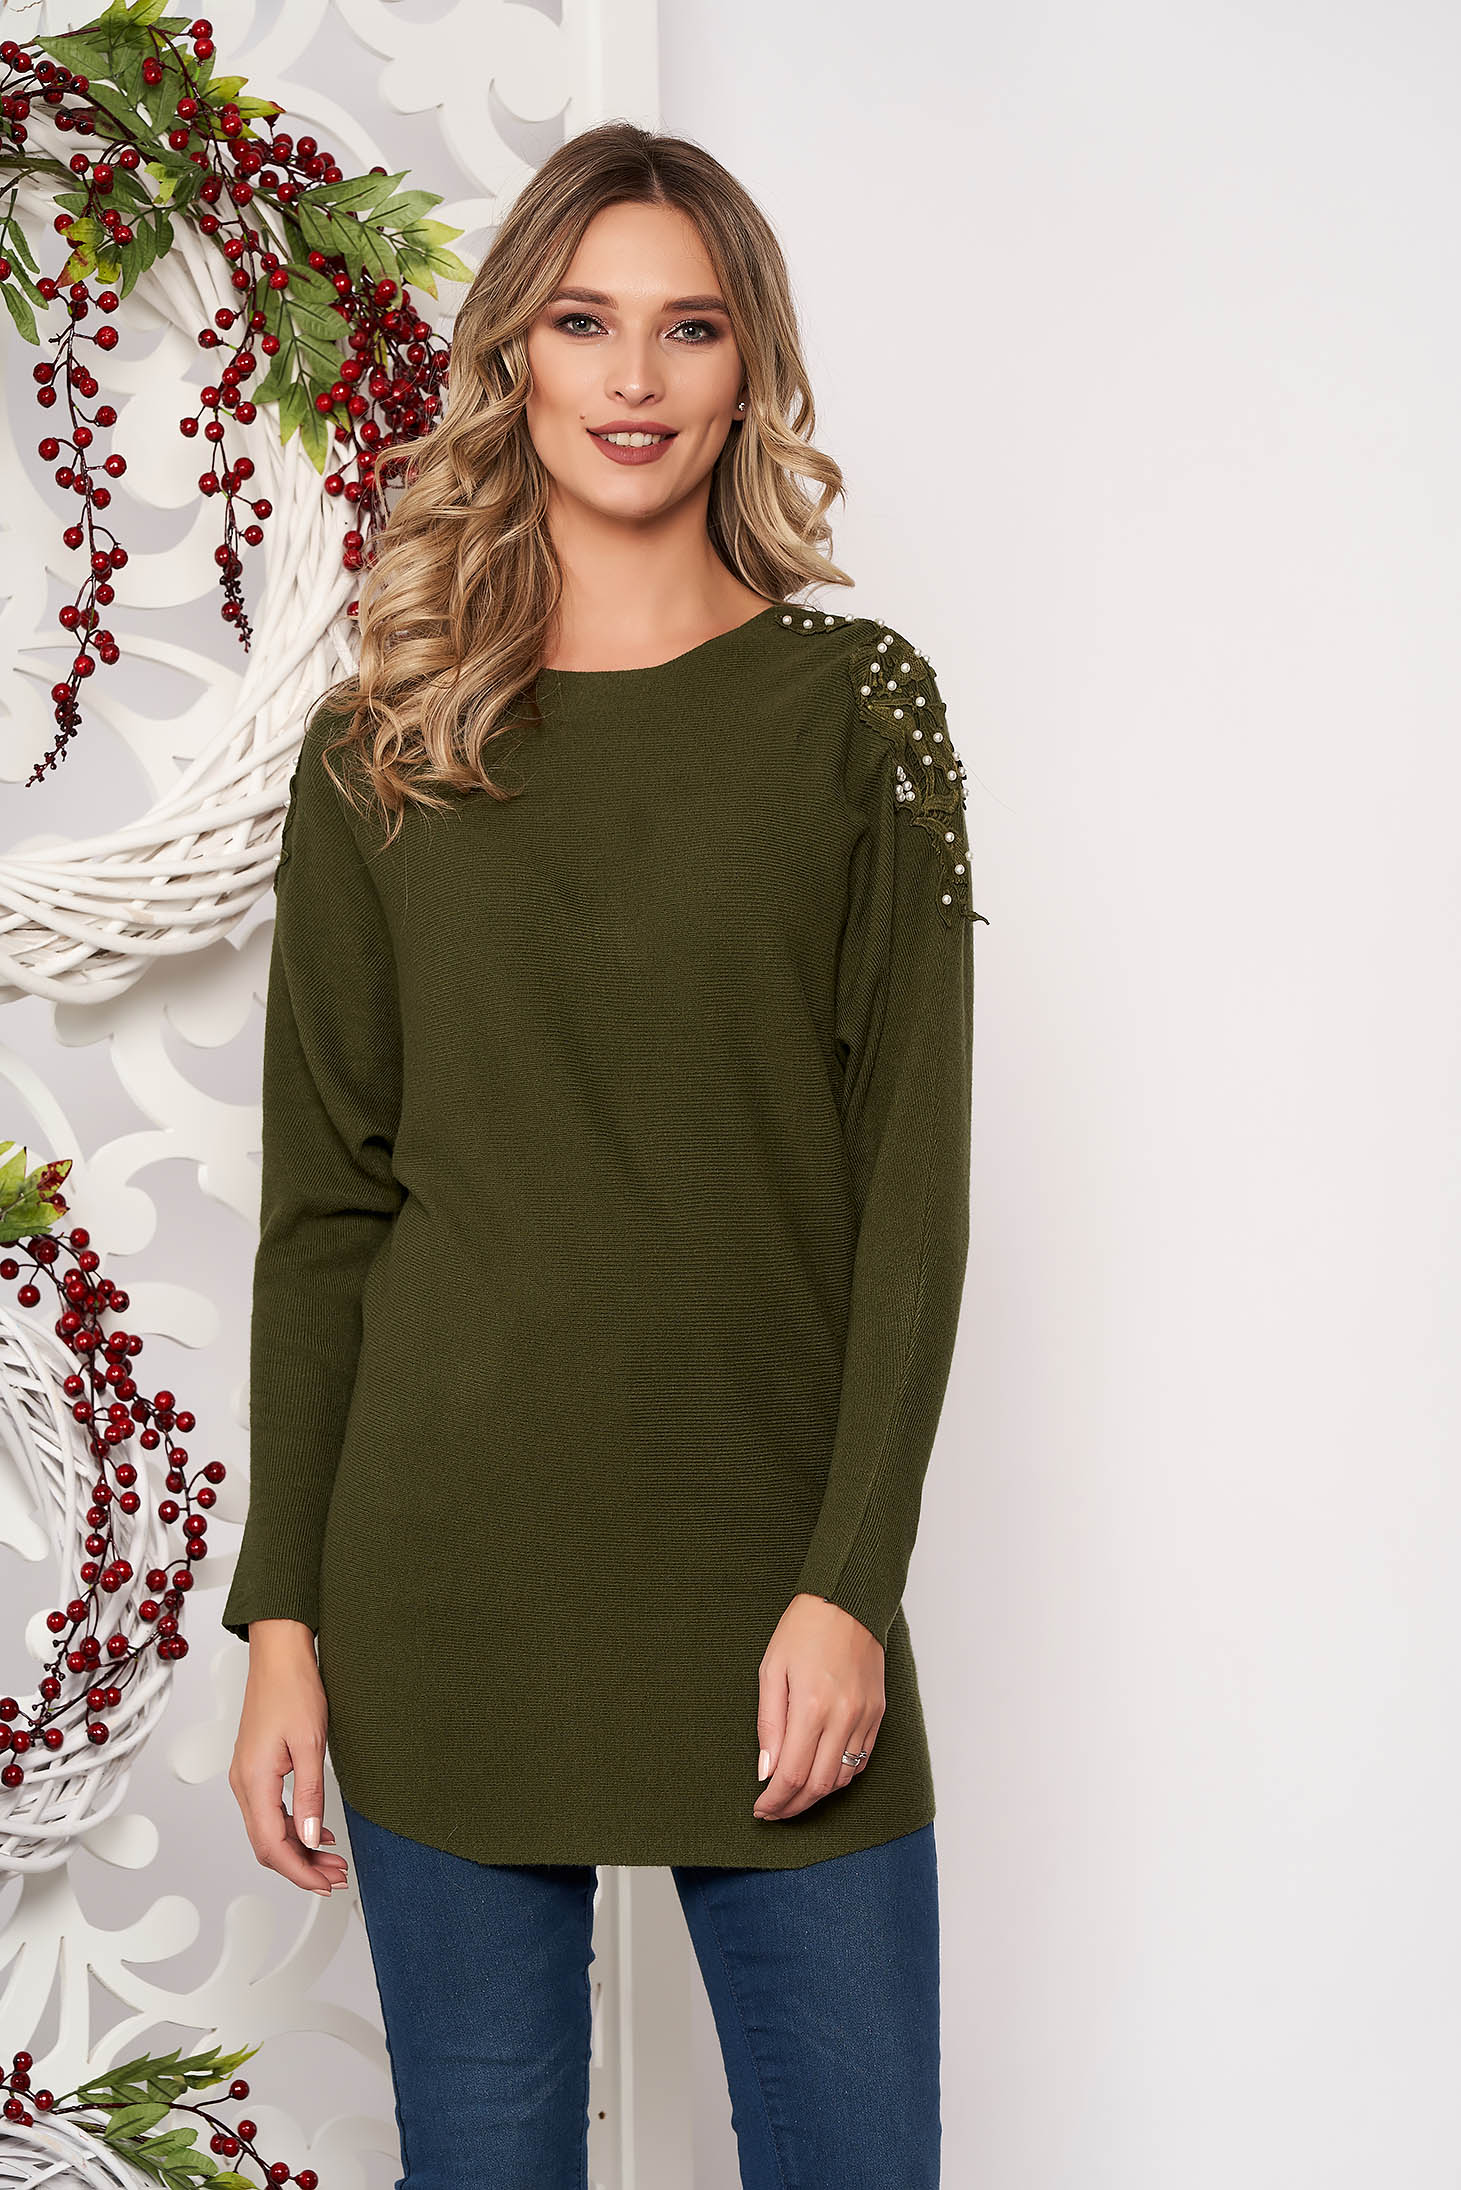 Darkgreen sweater long sleeved with lace details knitted fabric long sleeve flared short cut